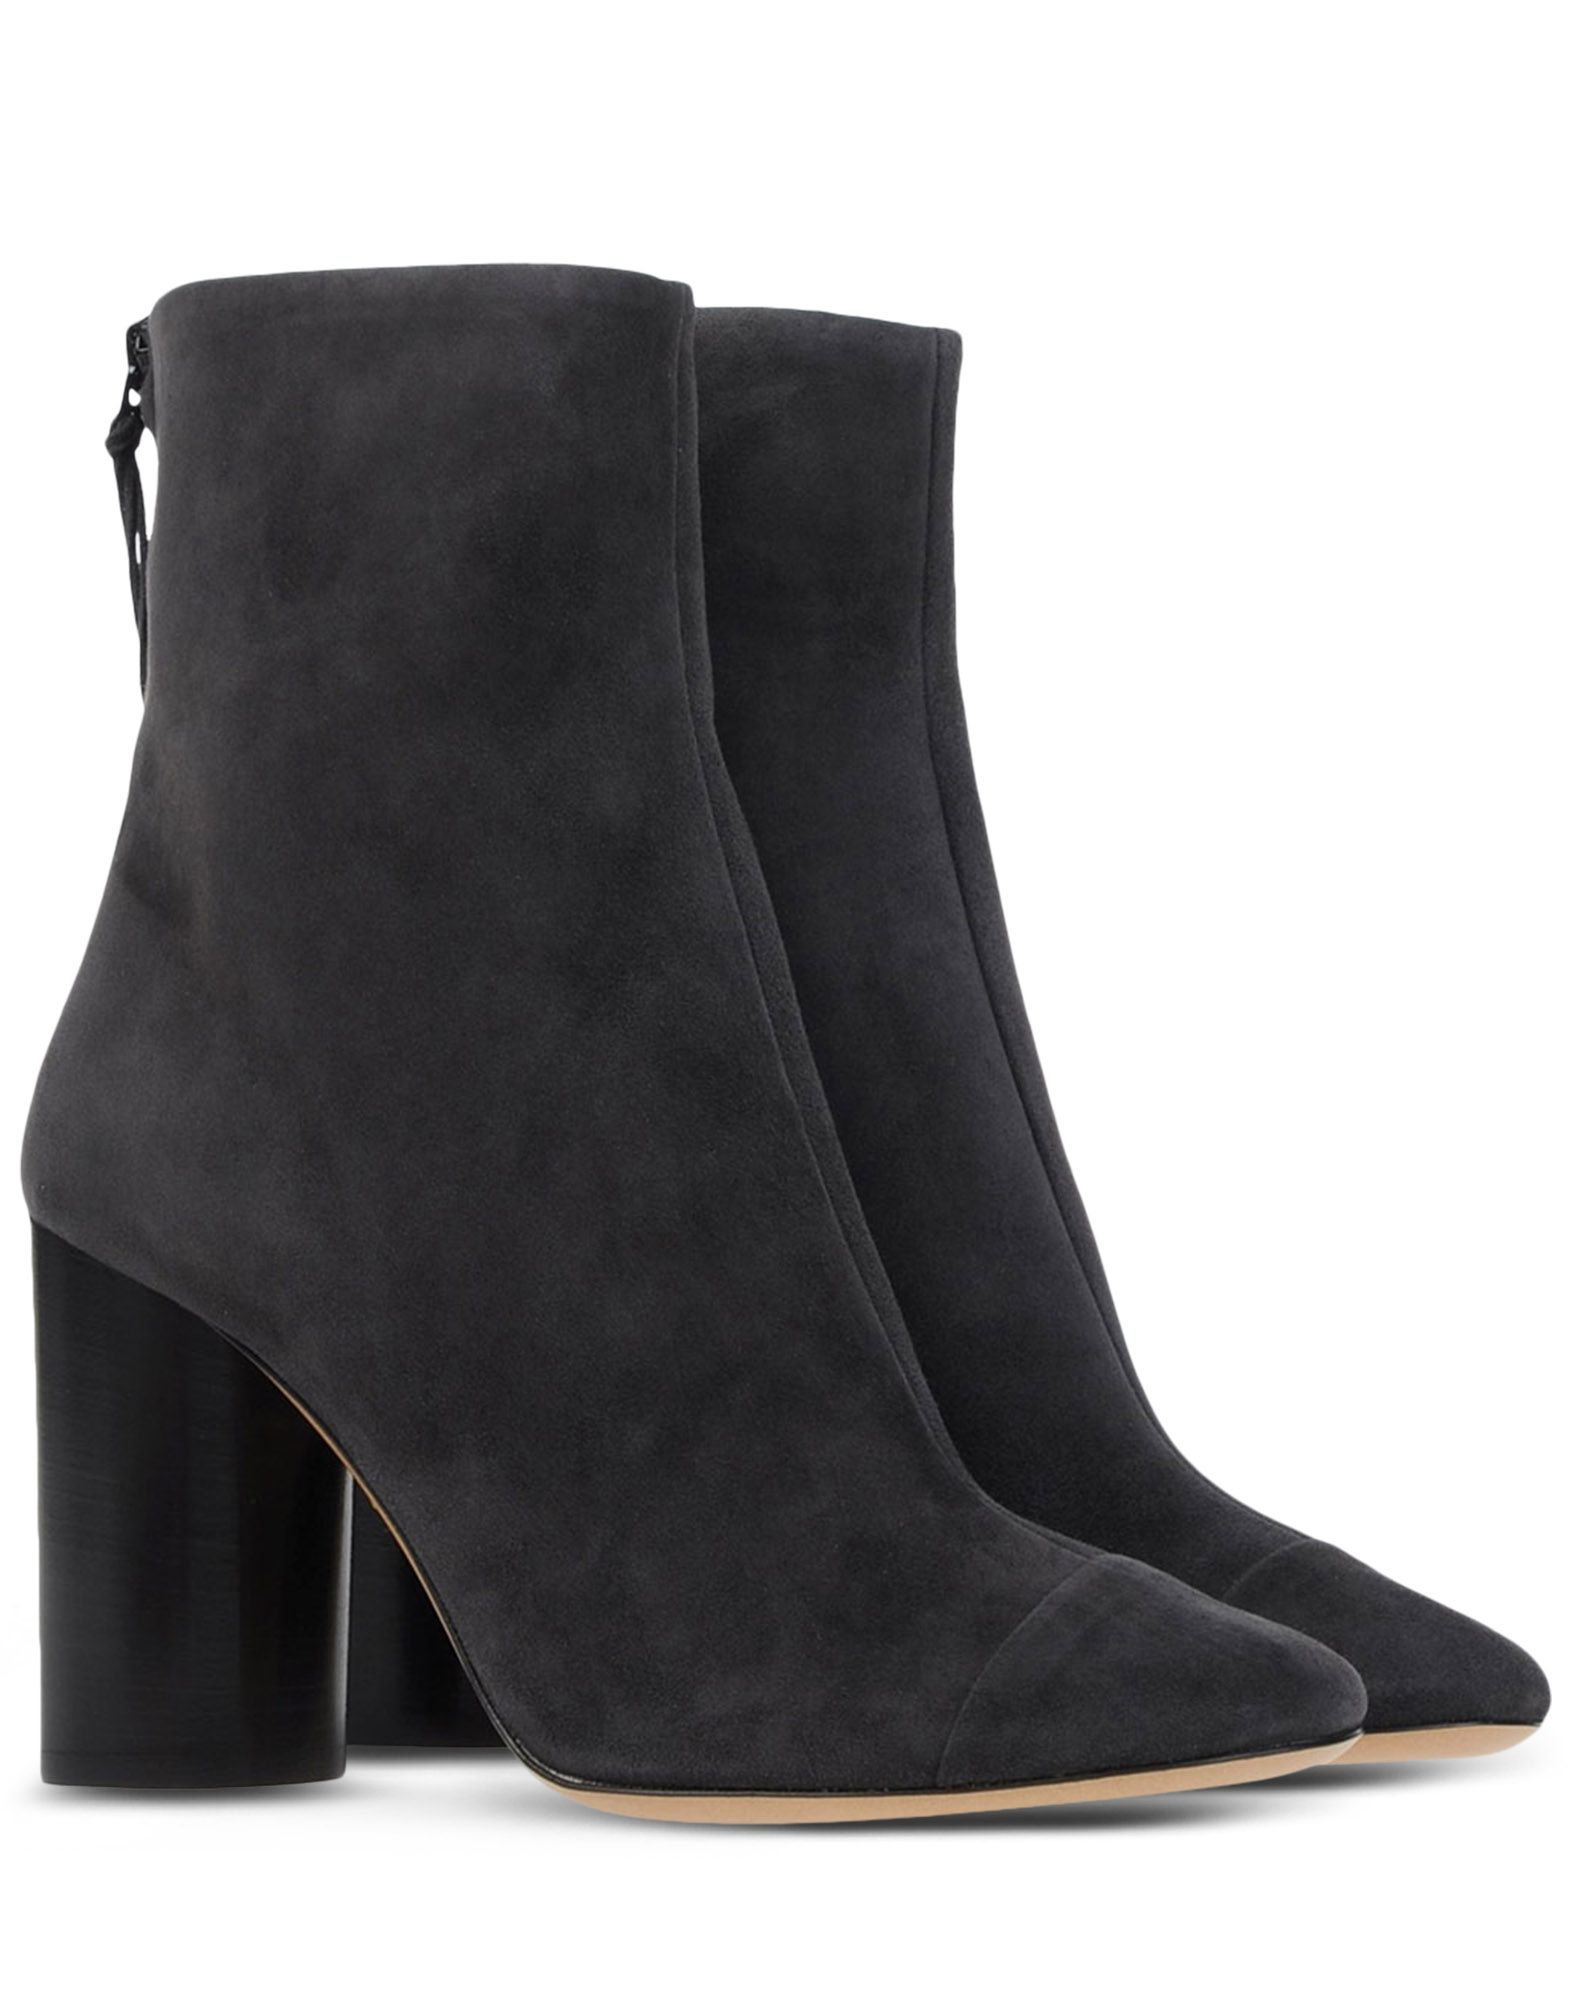 isabel marant suede ankle boots in gray steel grey lyst. Black Bedroom Furniture Sets. Home Design Ideas